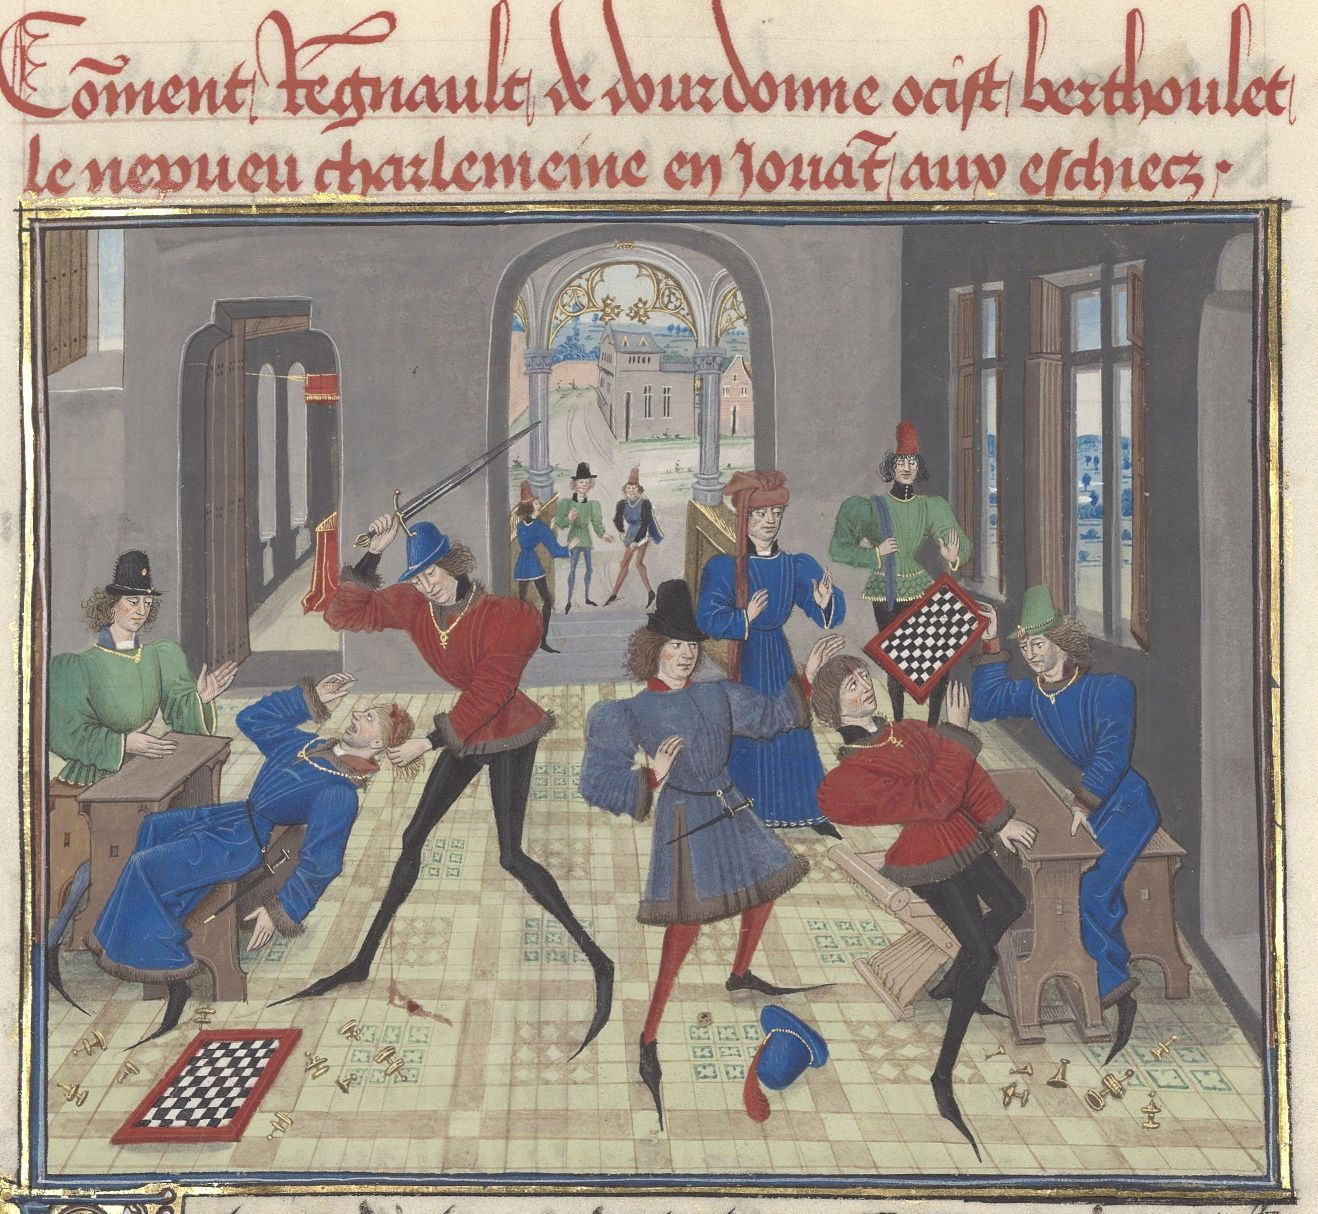 Fight over a game of chess, from the C15th Regnault de Montauban manuscript